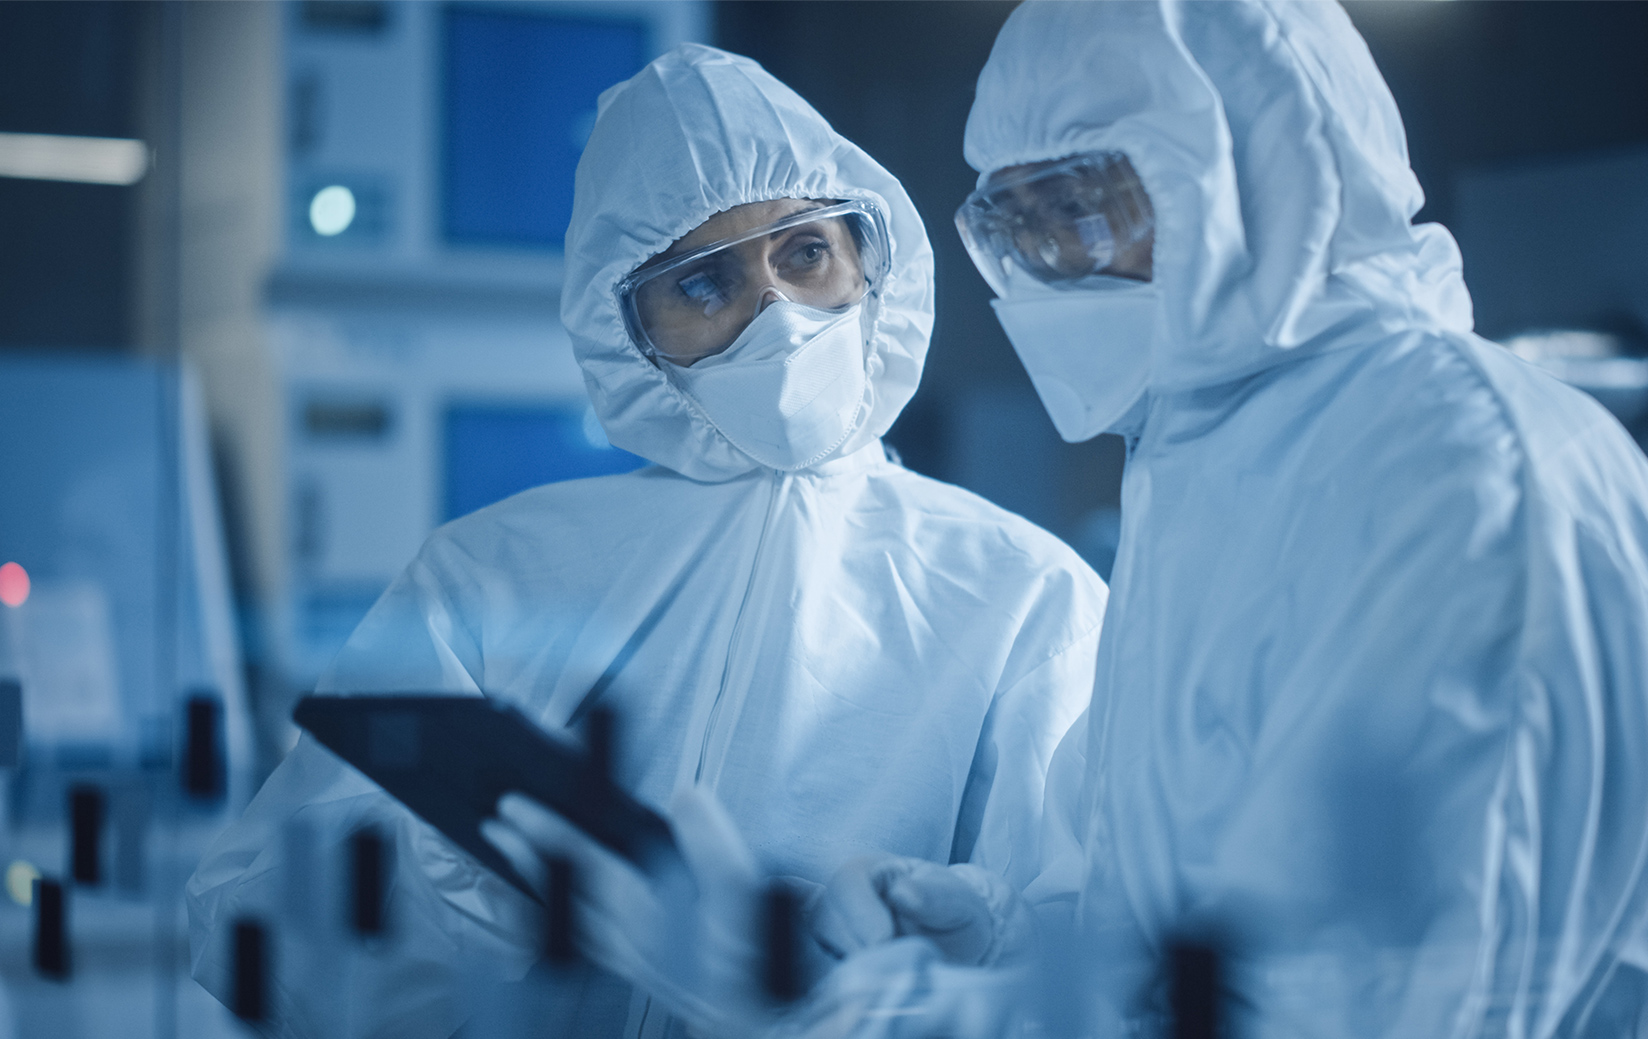 Working with Connect2Cleanrooms to expand our cleanroom capacity